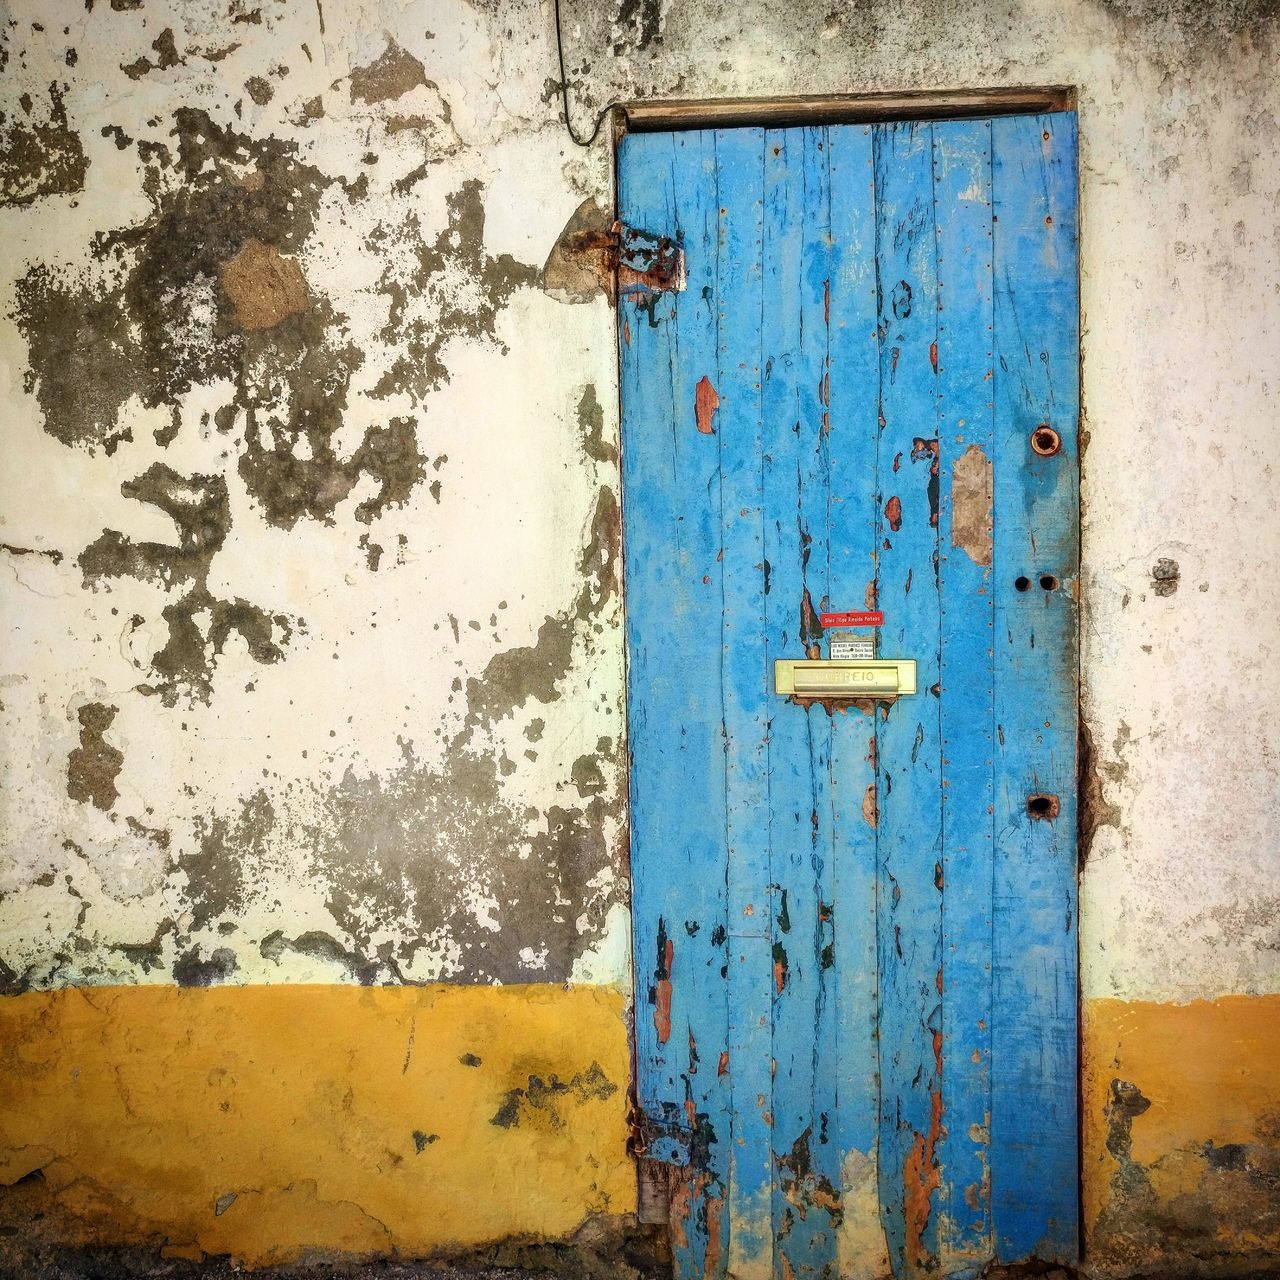 door, closed, day, outdoors, no people, weathered, close-up, yellow, blue, built structure, architecture